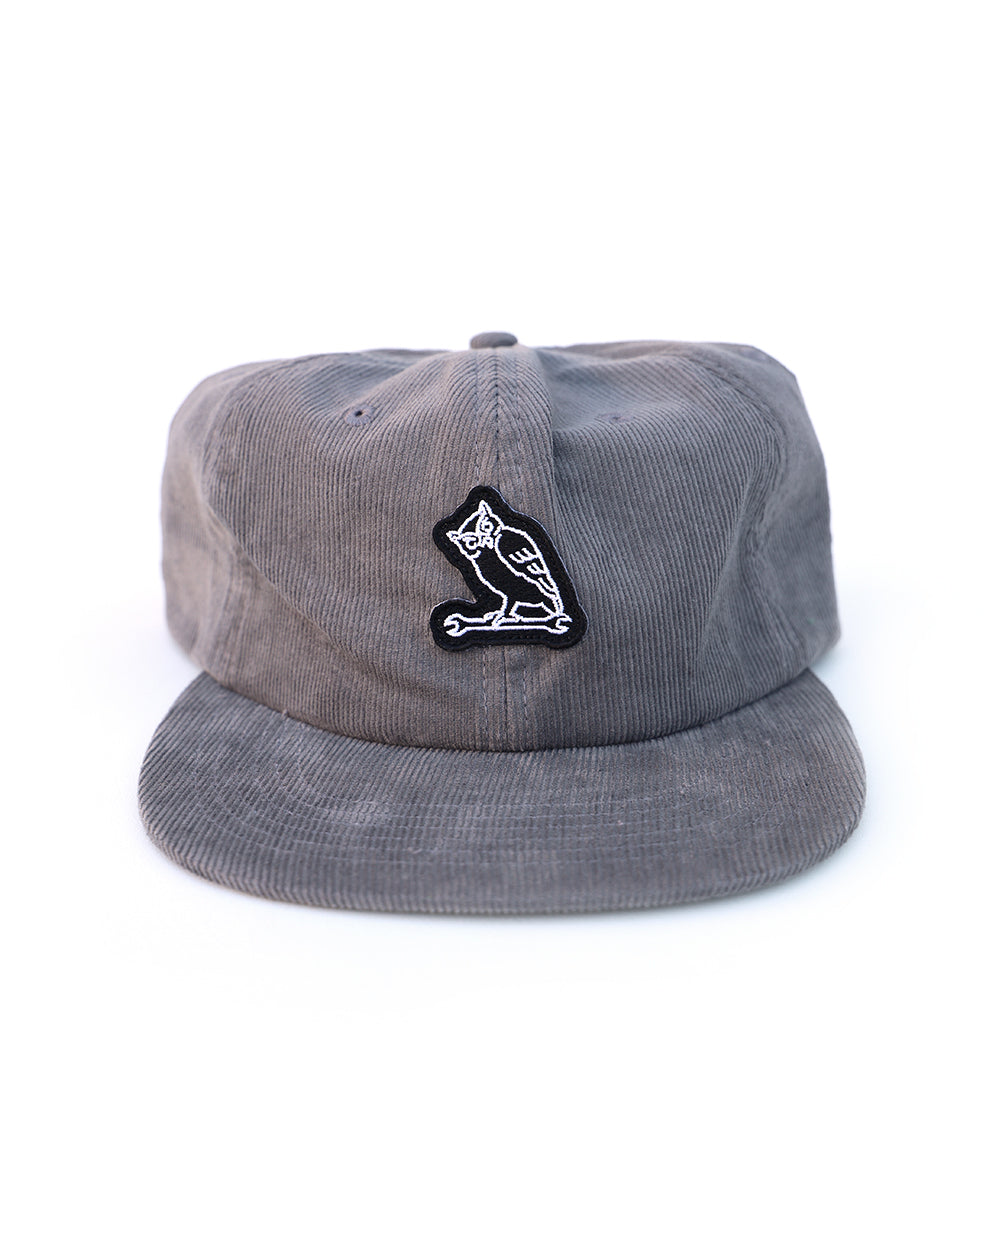 TF NIGHT CREW OWL CORDUROY CAP - GREY - Tankfarm & Co.